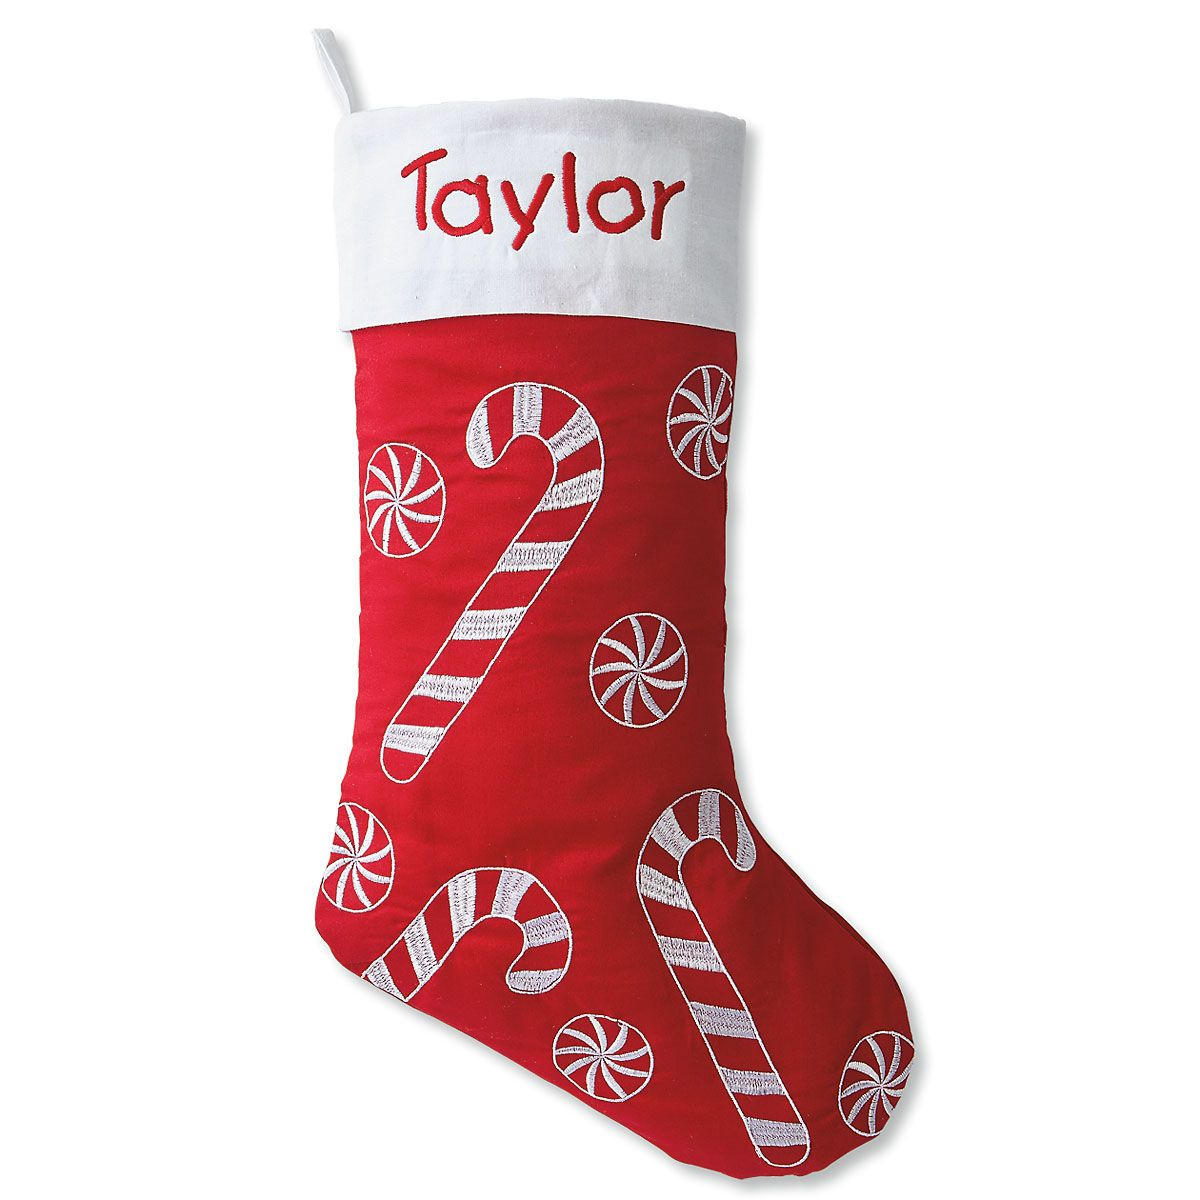 Candy Cane and Peppermint Personalized Christmas Stocking